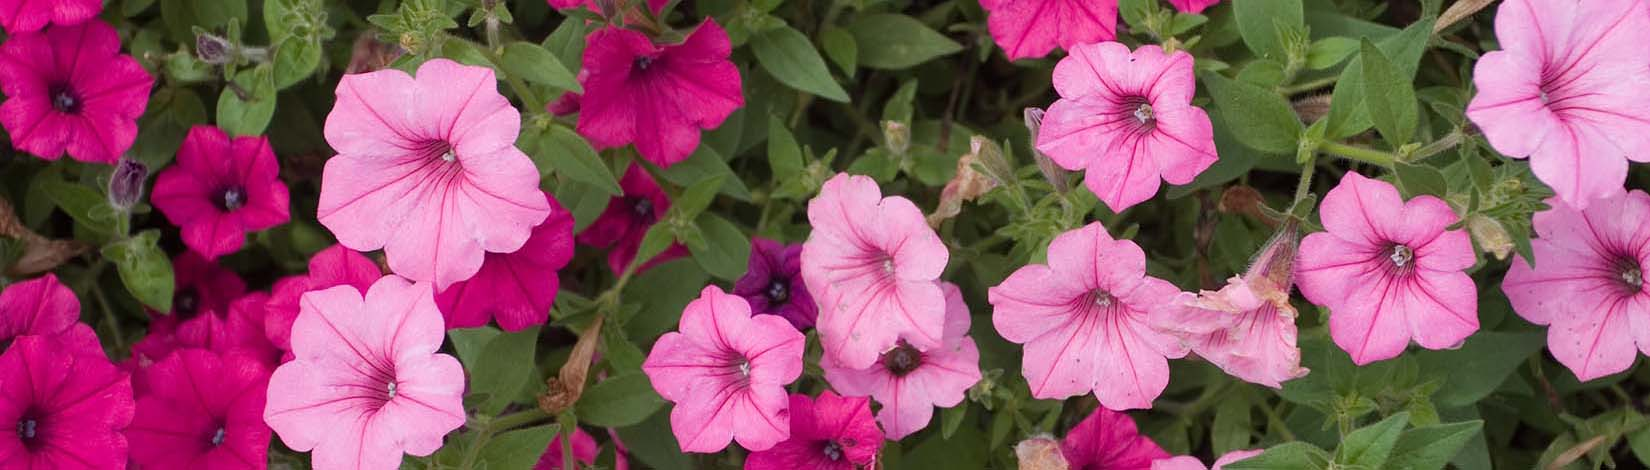 Petunias are an example of annual flowers in Florida